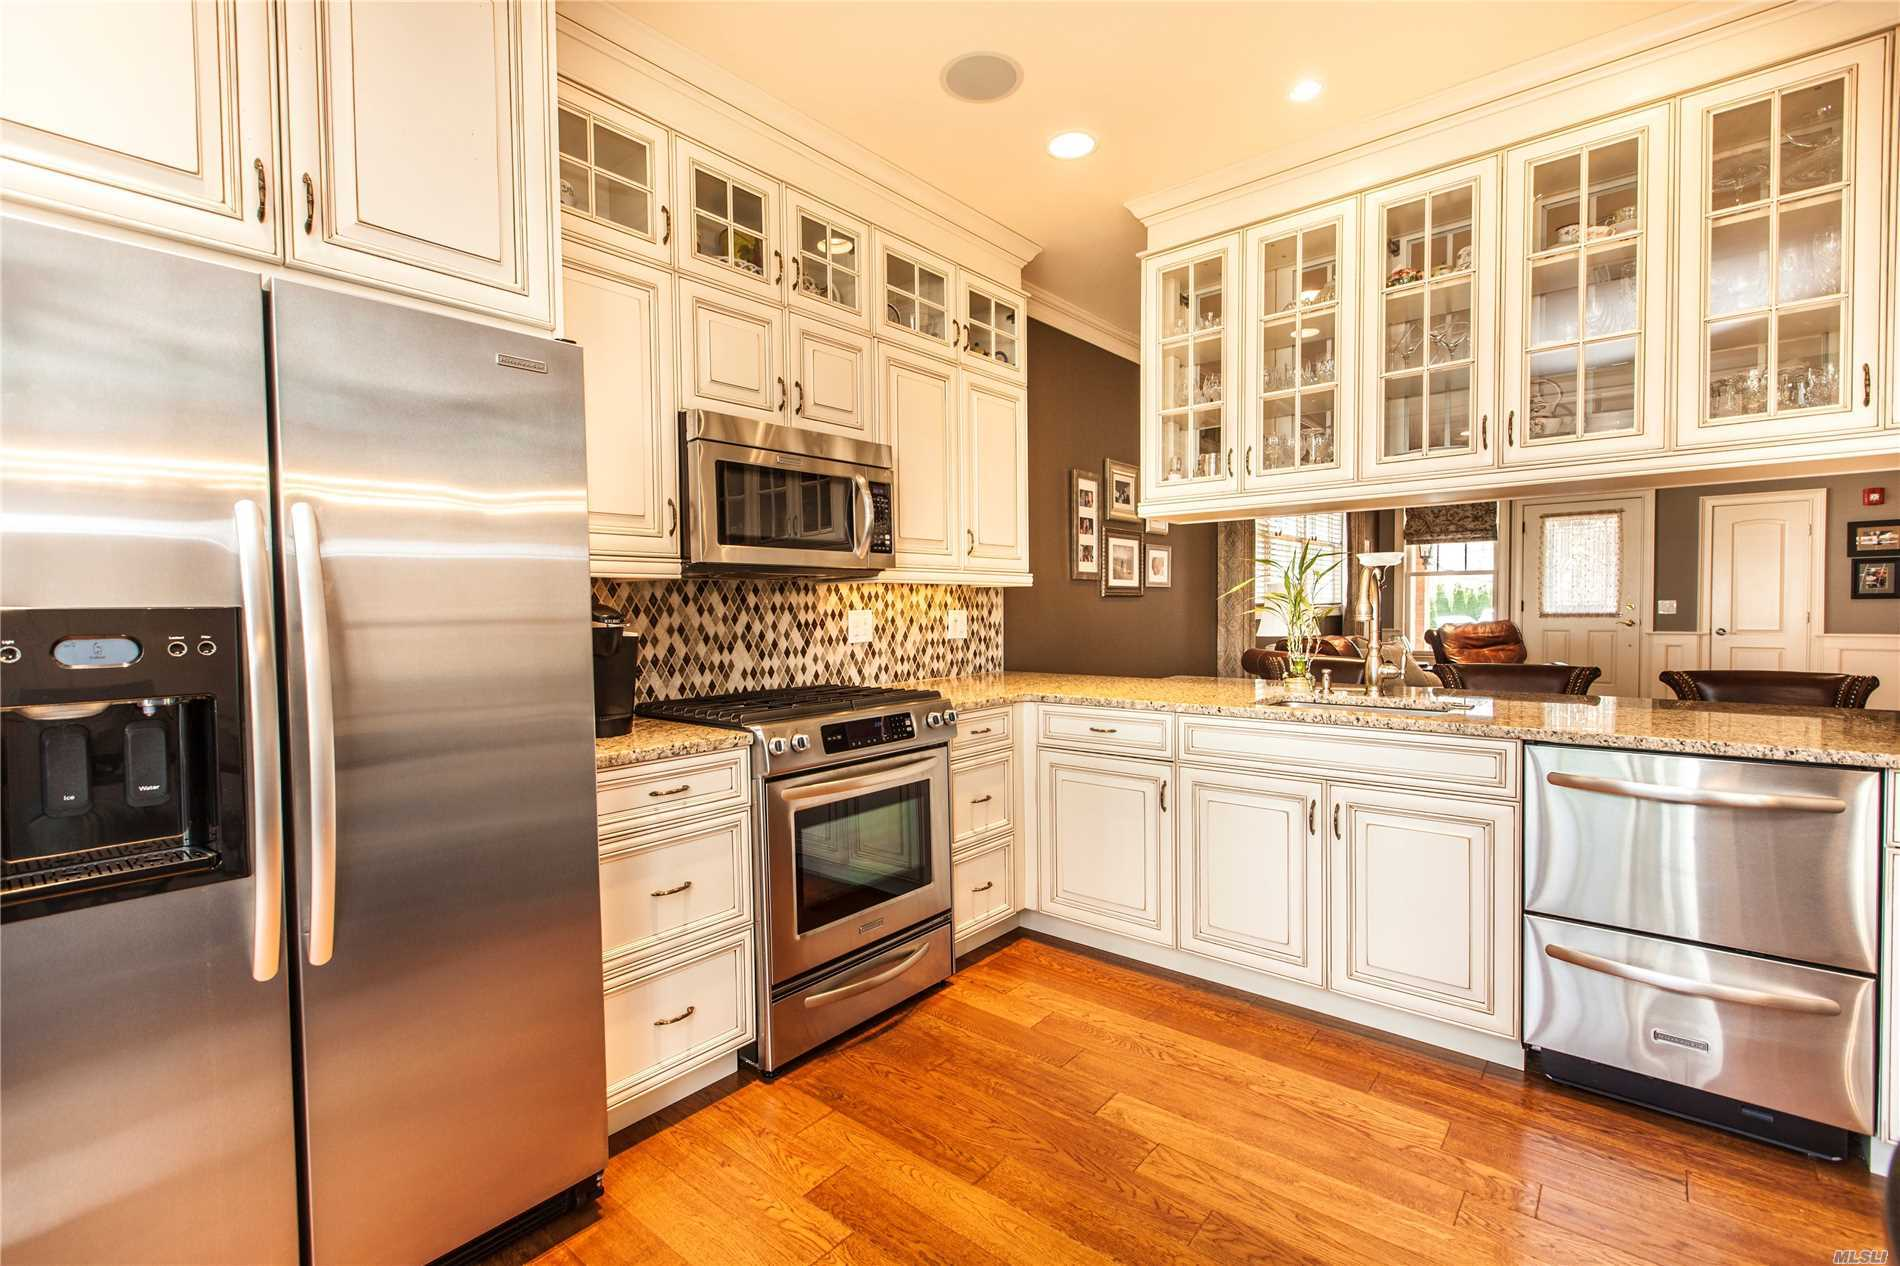 Gorgeous Georgetown Villa W/ Designer Finishes Throughout. All Floors 5 Oak Wood, 5 Crown Moldings, Custom Kitchen W/ Floating Cabinet Above Granite Counter, Custom Closet Cabinetry W/ Lighting, Custom Window Treatments, Custom Raised Panel Walls In Kitchen, Bathroom, Hallway & Upstairs Den. Upgraded 2 Zone Heat/Hvac W/ Added Electrostatic Filter In Addition To Regular Filter & Humidifier, Hot Water Circulation, Laundry Room, Attached Garage & Patio.